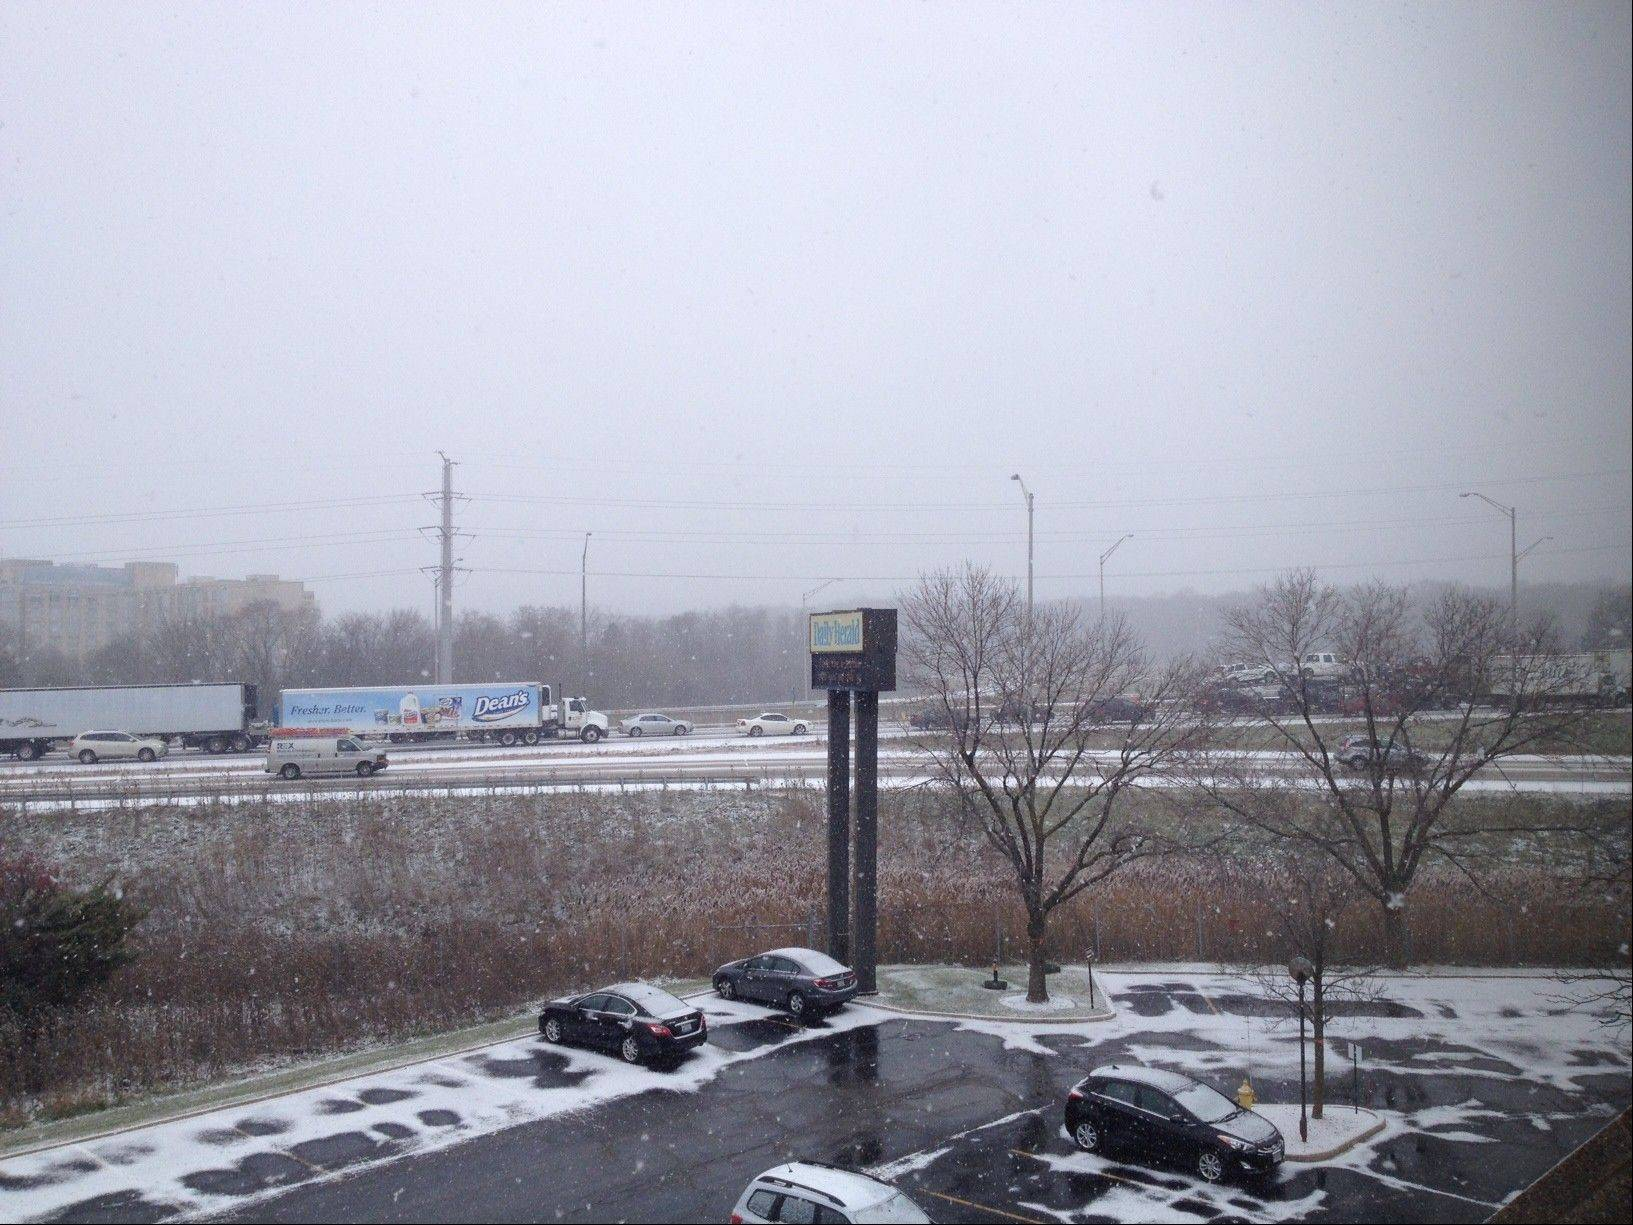 Snow is falling in the Northwest suburbs, causing traffic to back up on I-90 near Arlington Heights.